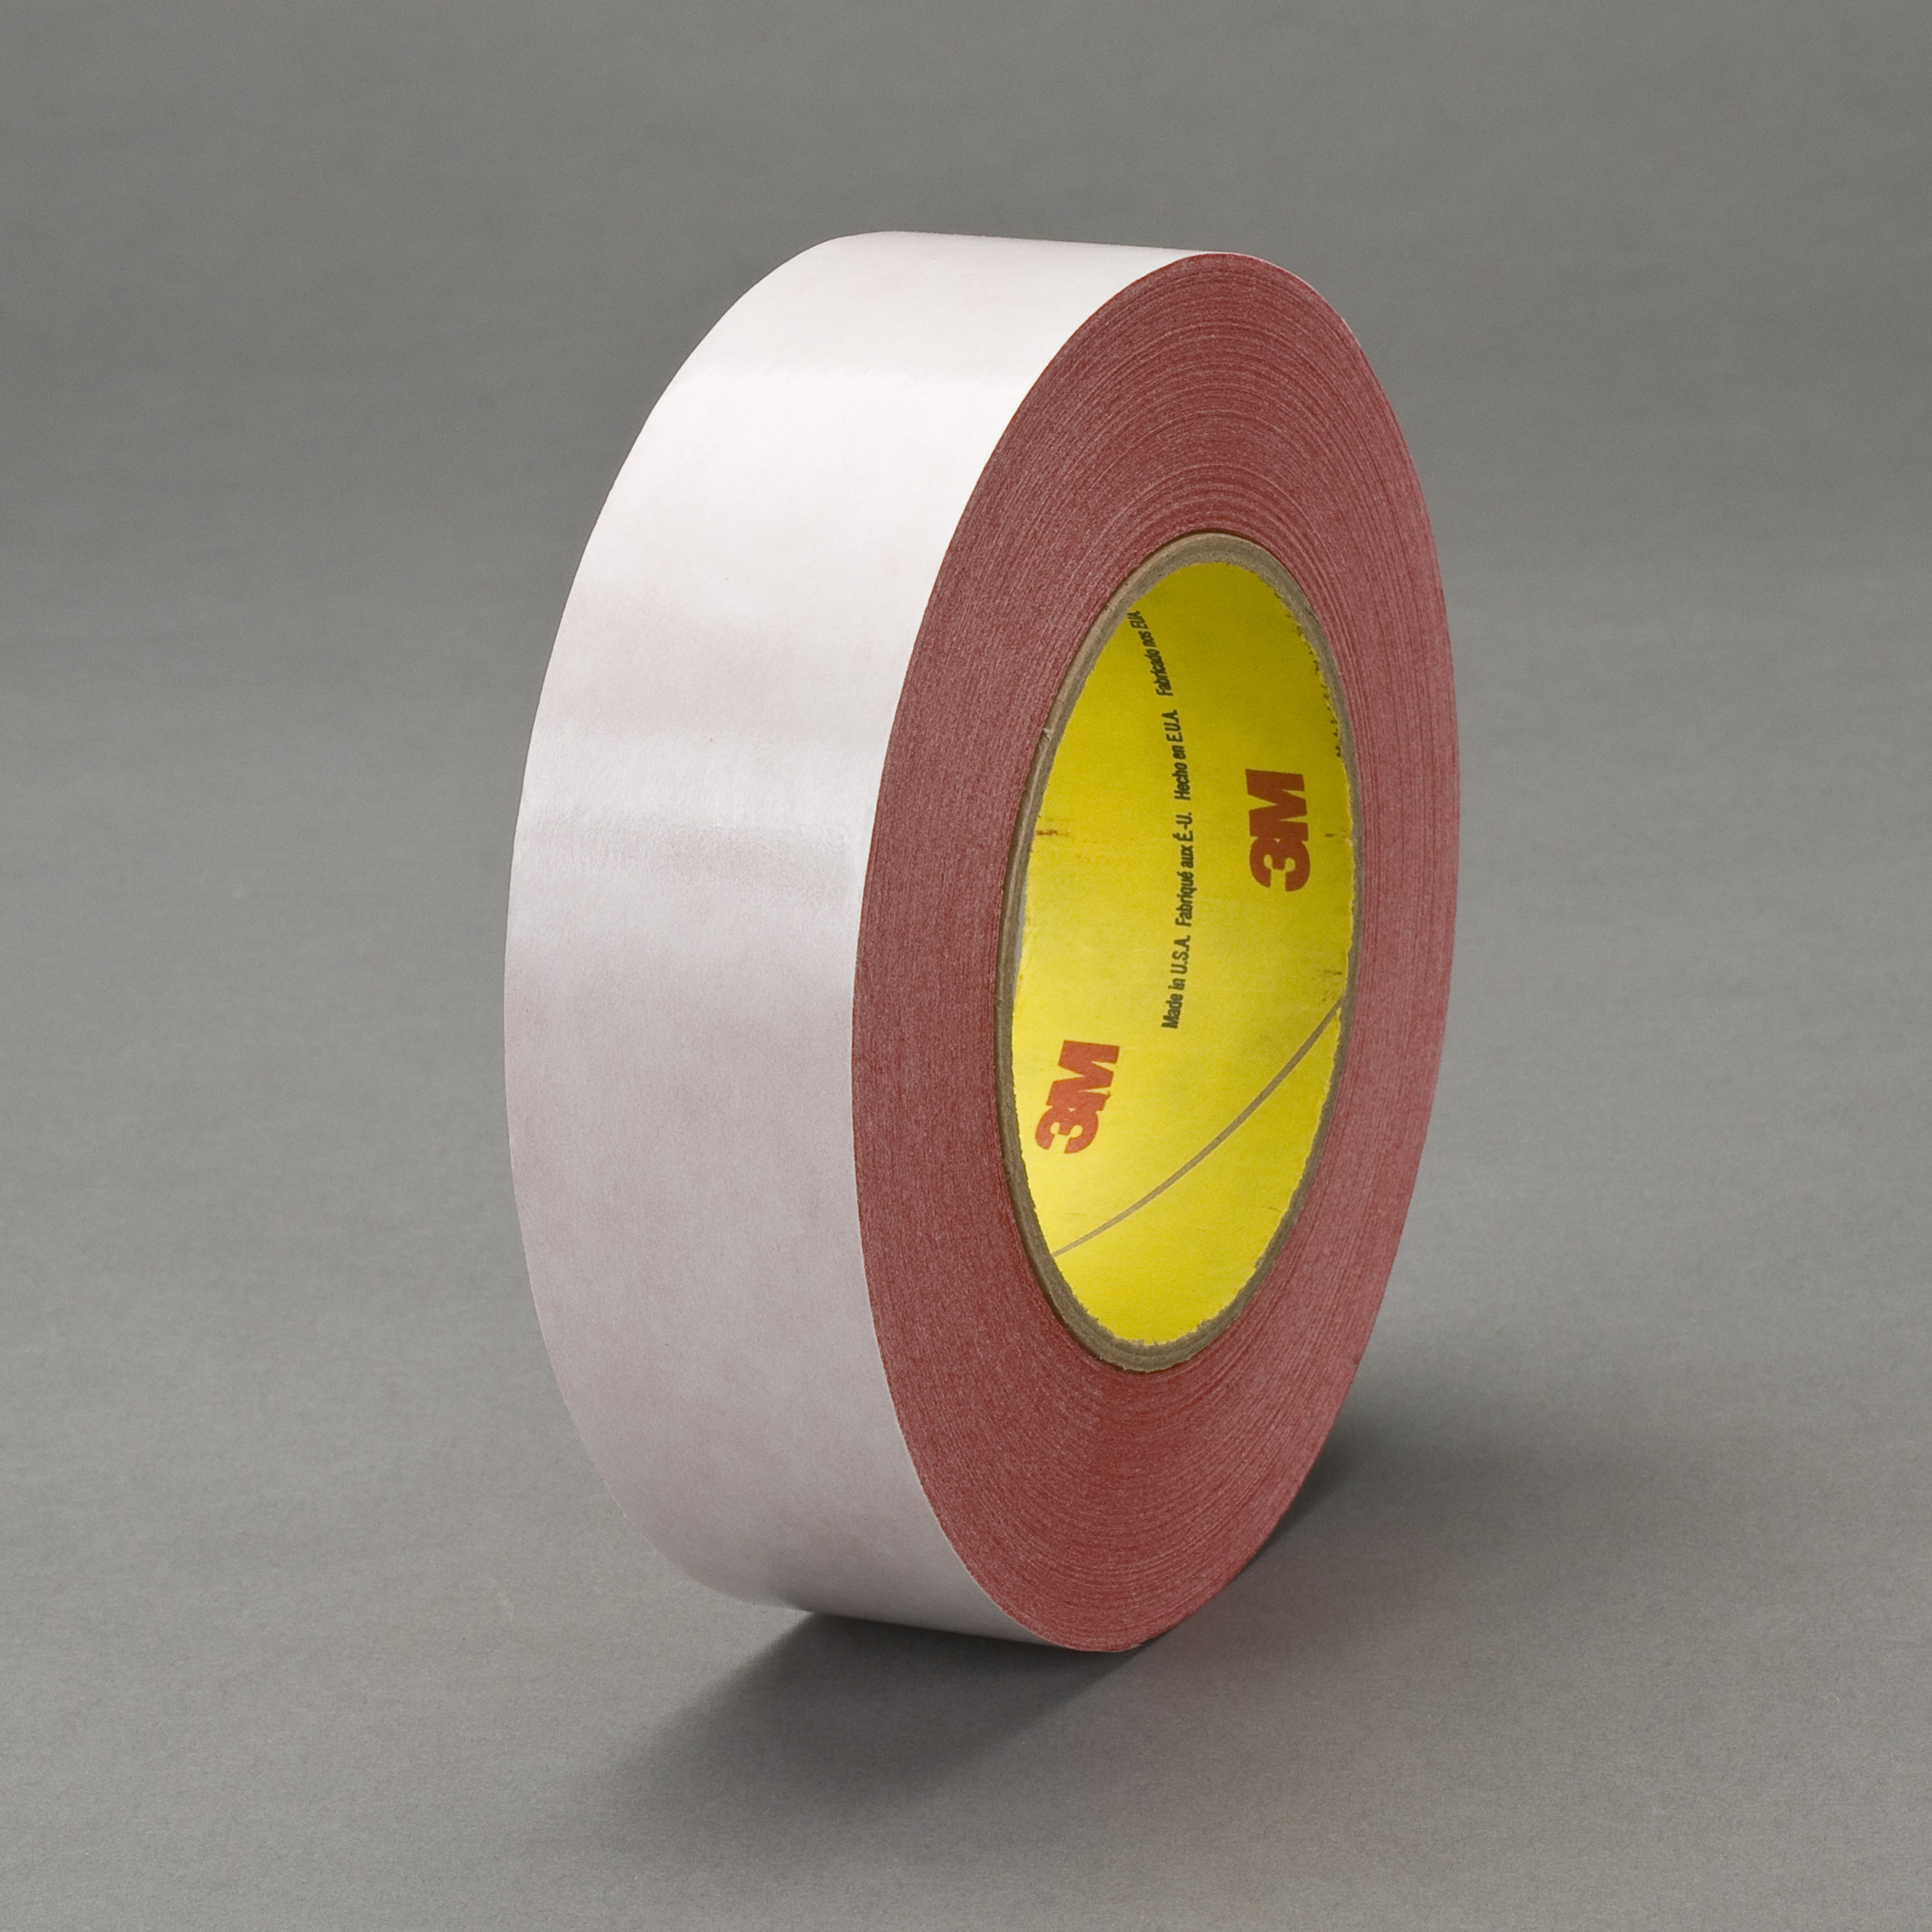 3M™ Double Coated Tape 9737R, Red, 19 mm x 55 m, 3.5 mil, 64 rolls per case